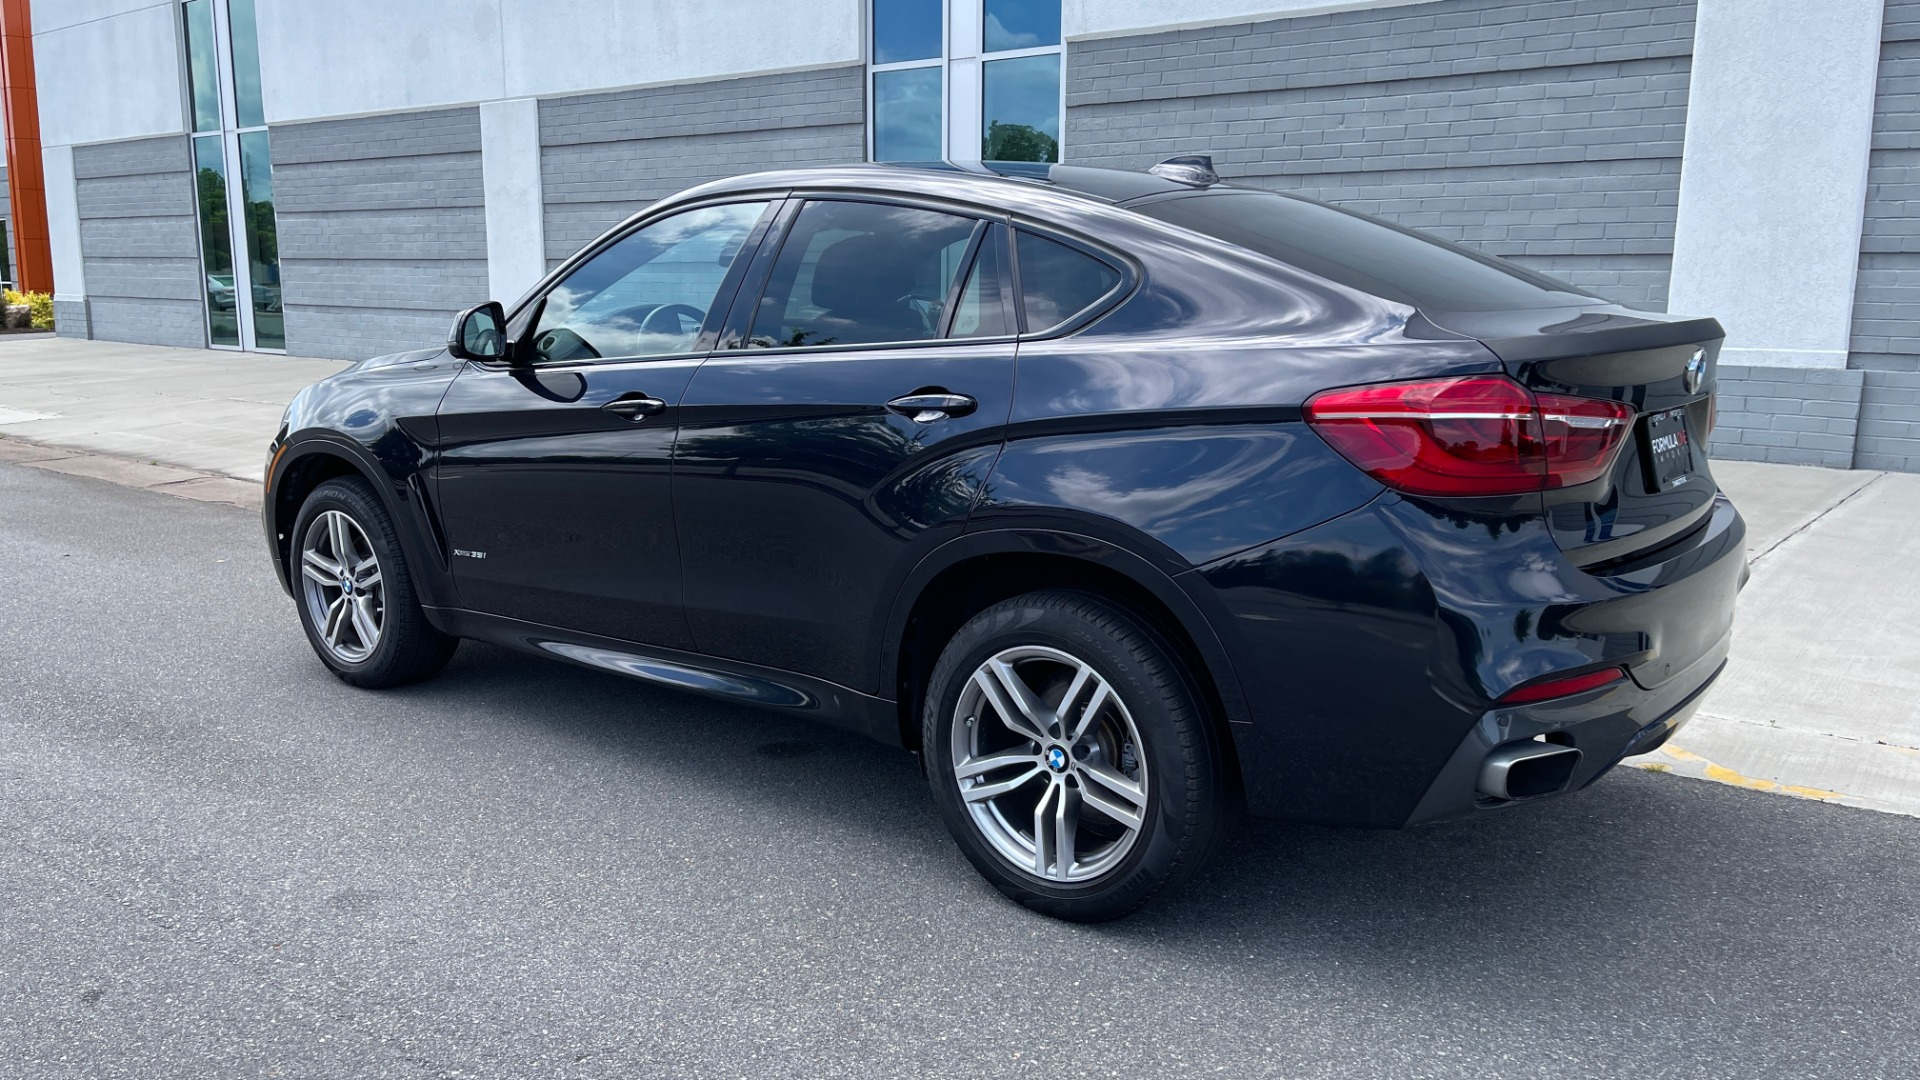 Used 2018 BMW X6 XDRIVE35I M-SPORT / DRVR ASST / PRK ASST / H/K SND / APPLE / WIRELESS CHARG for sale $51,995 at Formula Imports in Charlotte NC 28227 5